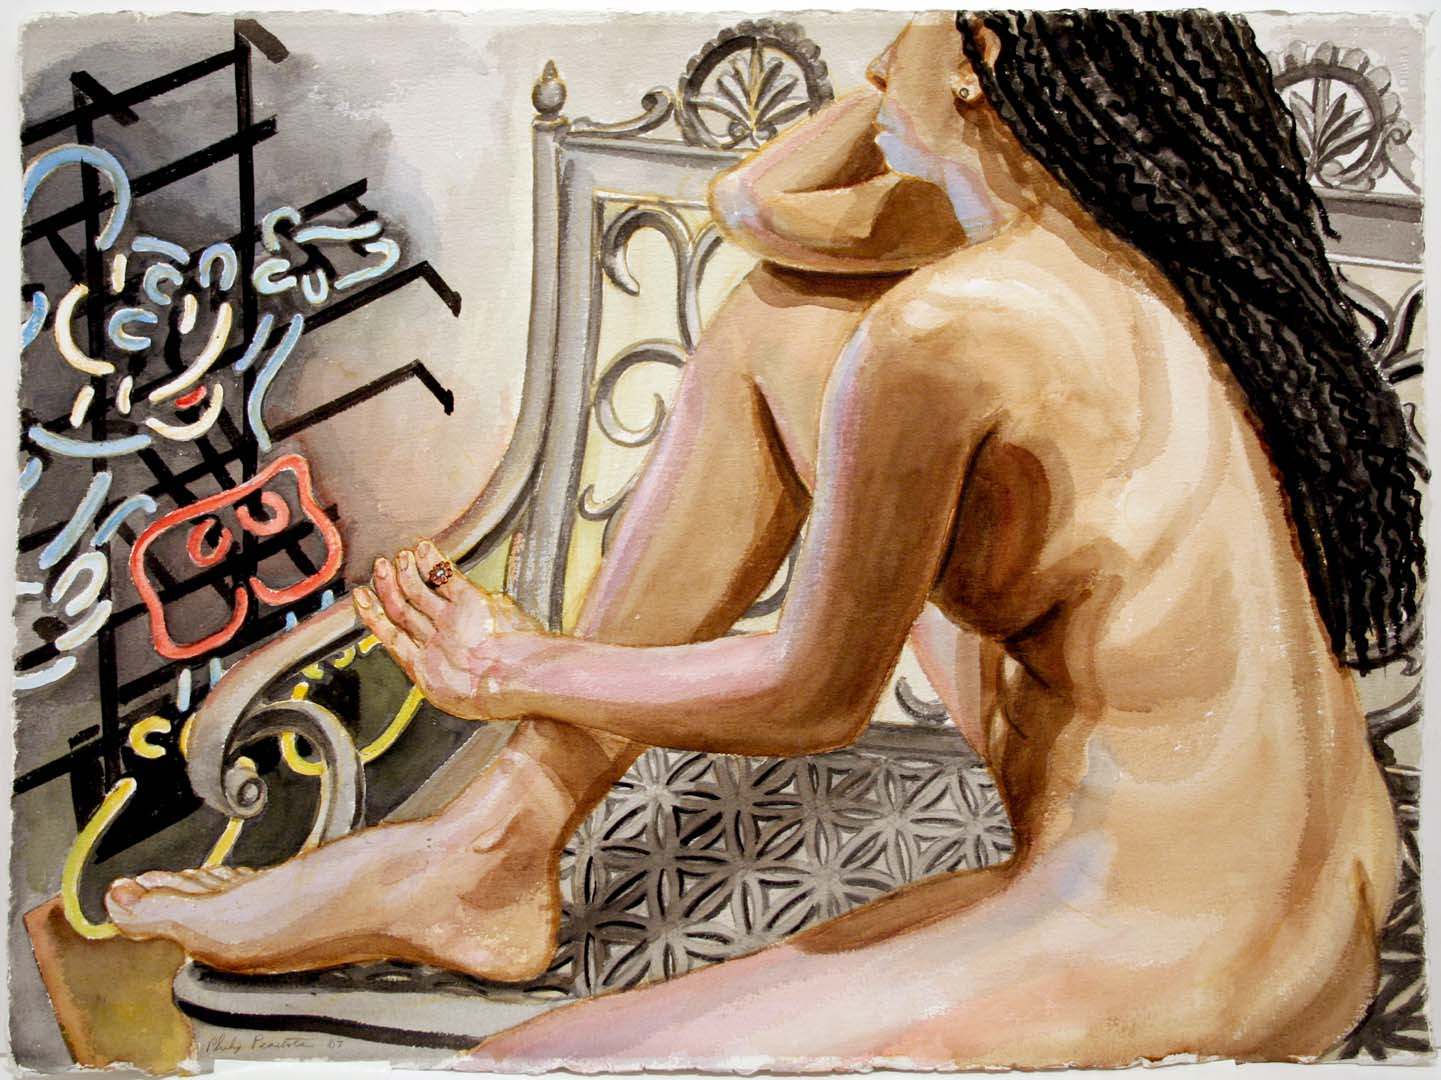 "2007 Model with Mickey Mouse on Iron Bench Watercolor on Paper 22.5"" x 30.25"""